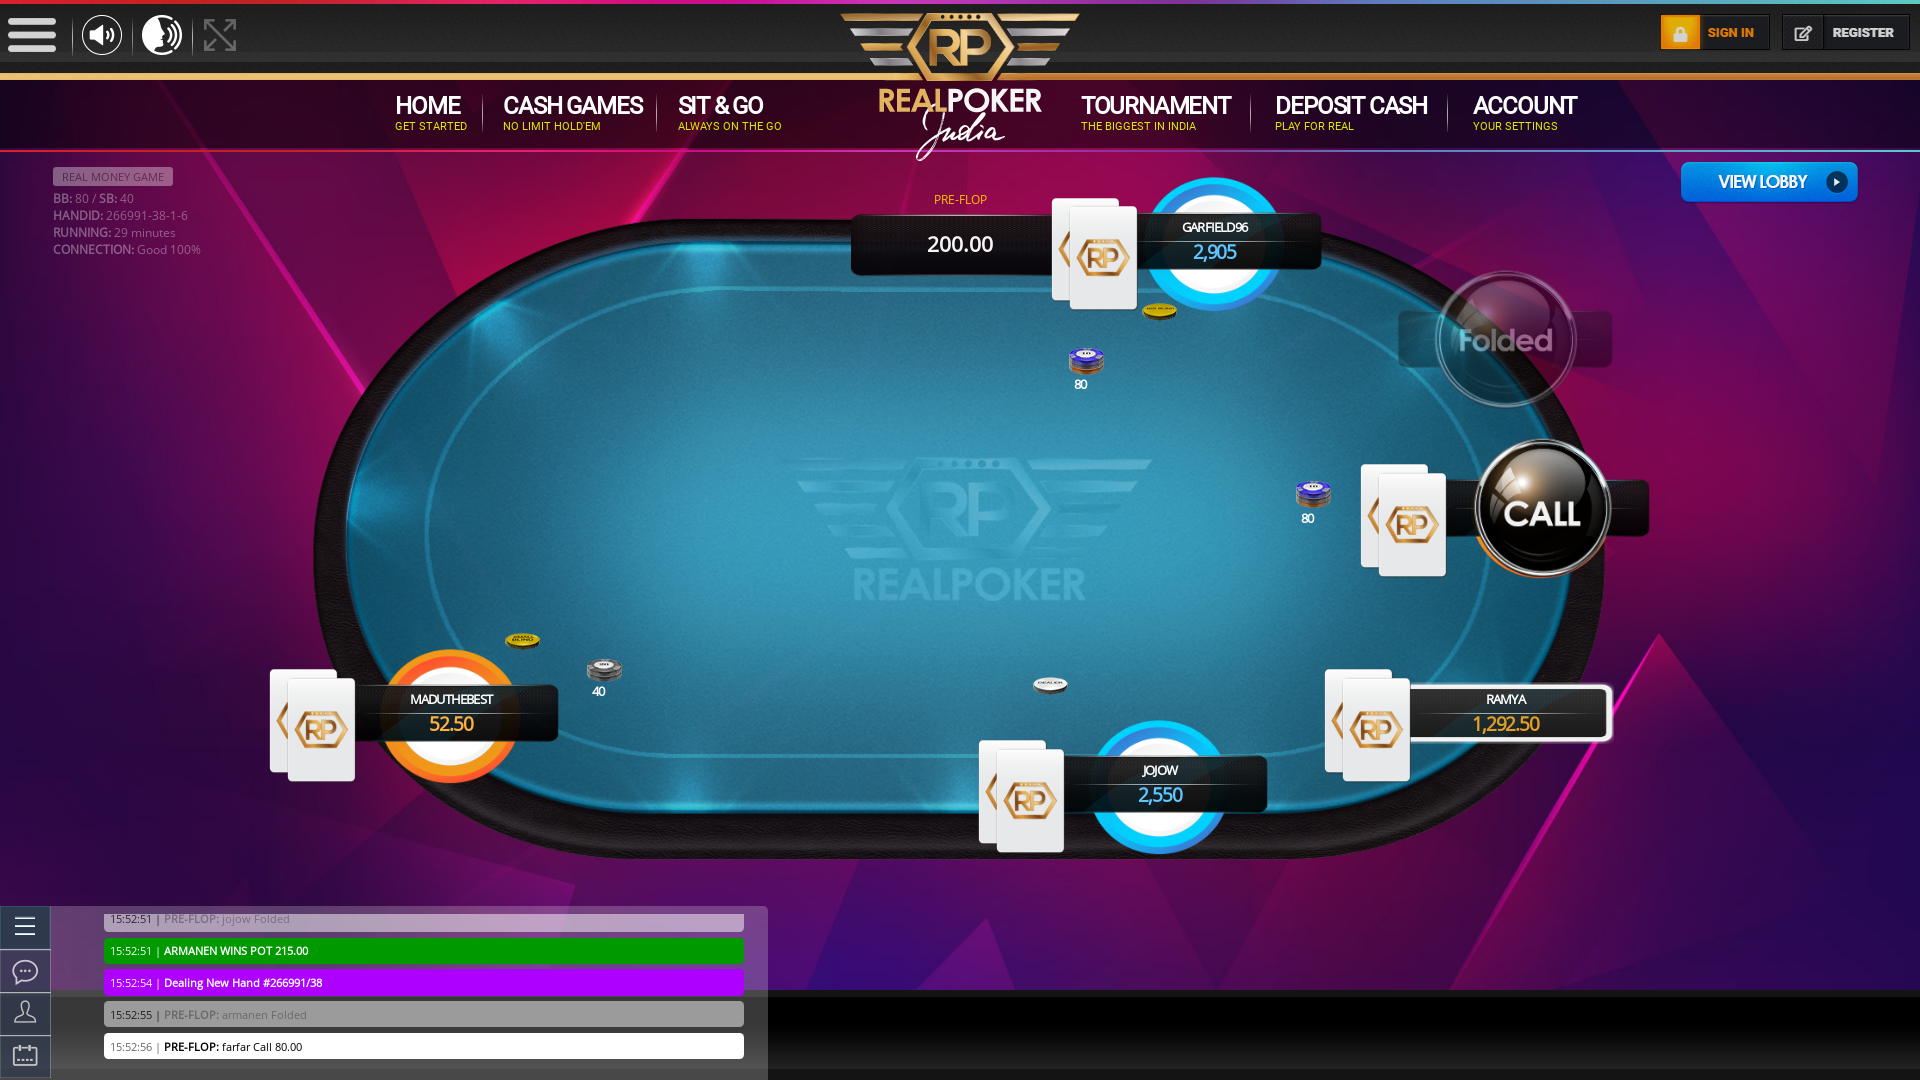 Indian online poker on a 10 player table in the 29th minute match up